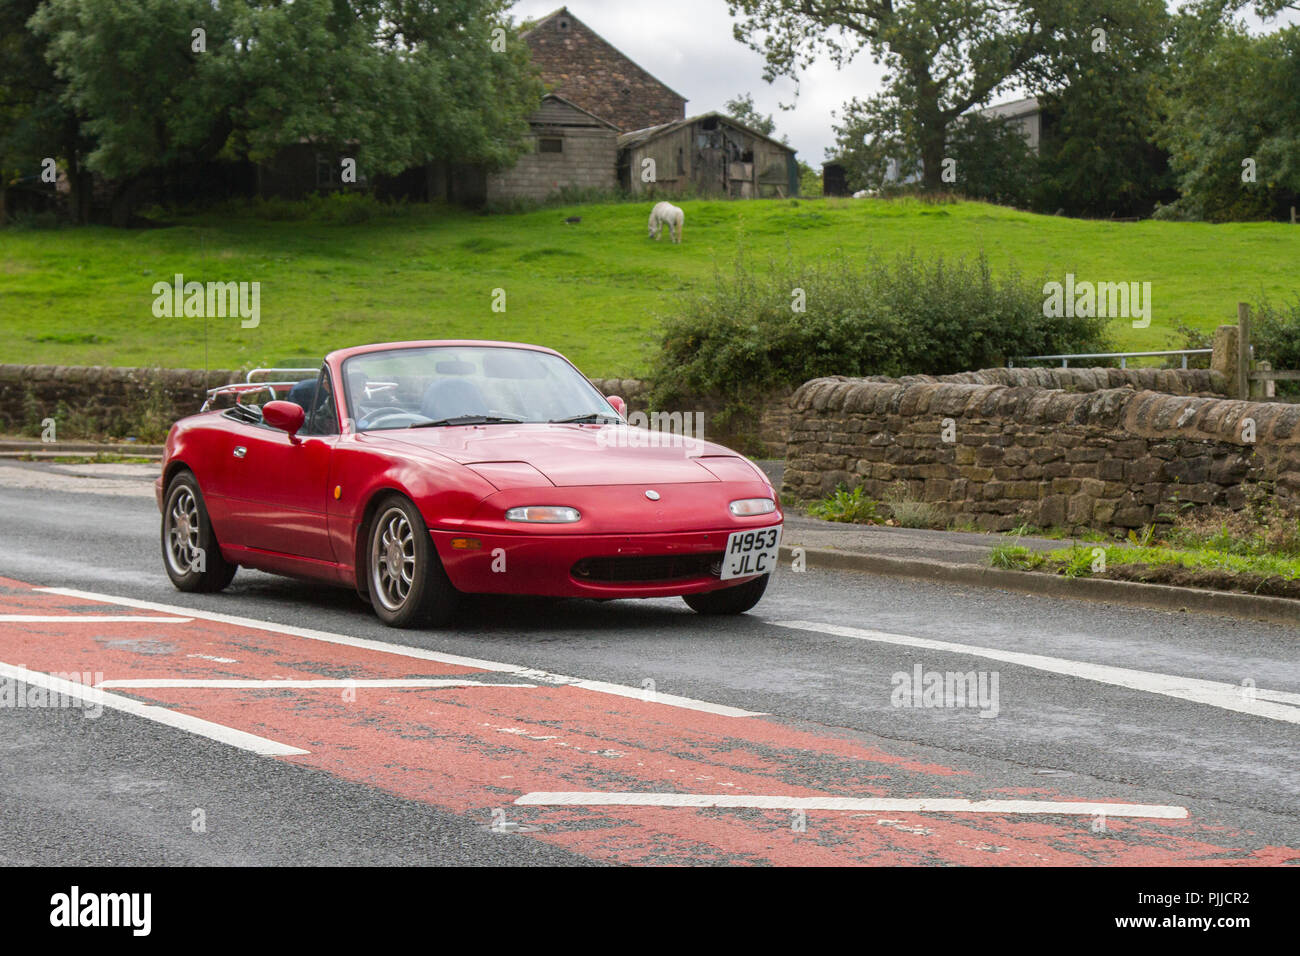 H953JLC Red 1991 Mazda Classic, vintage, veteran, cars of yesteryear, restored collectibles at Hoghton Tower Class Cars Rally, UK - Stock Image